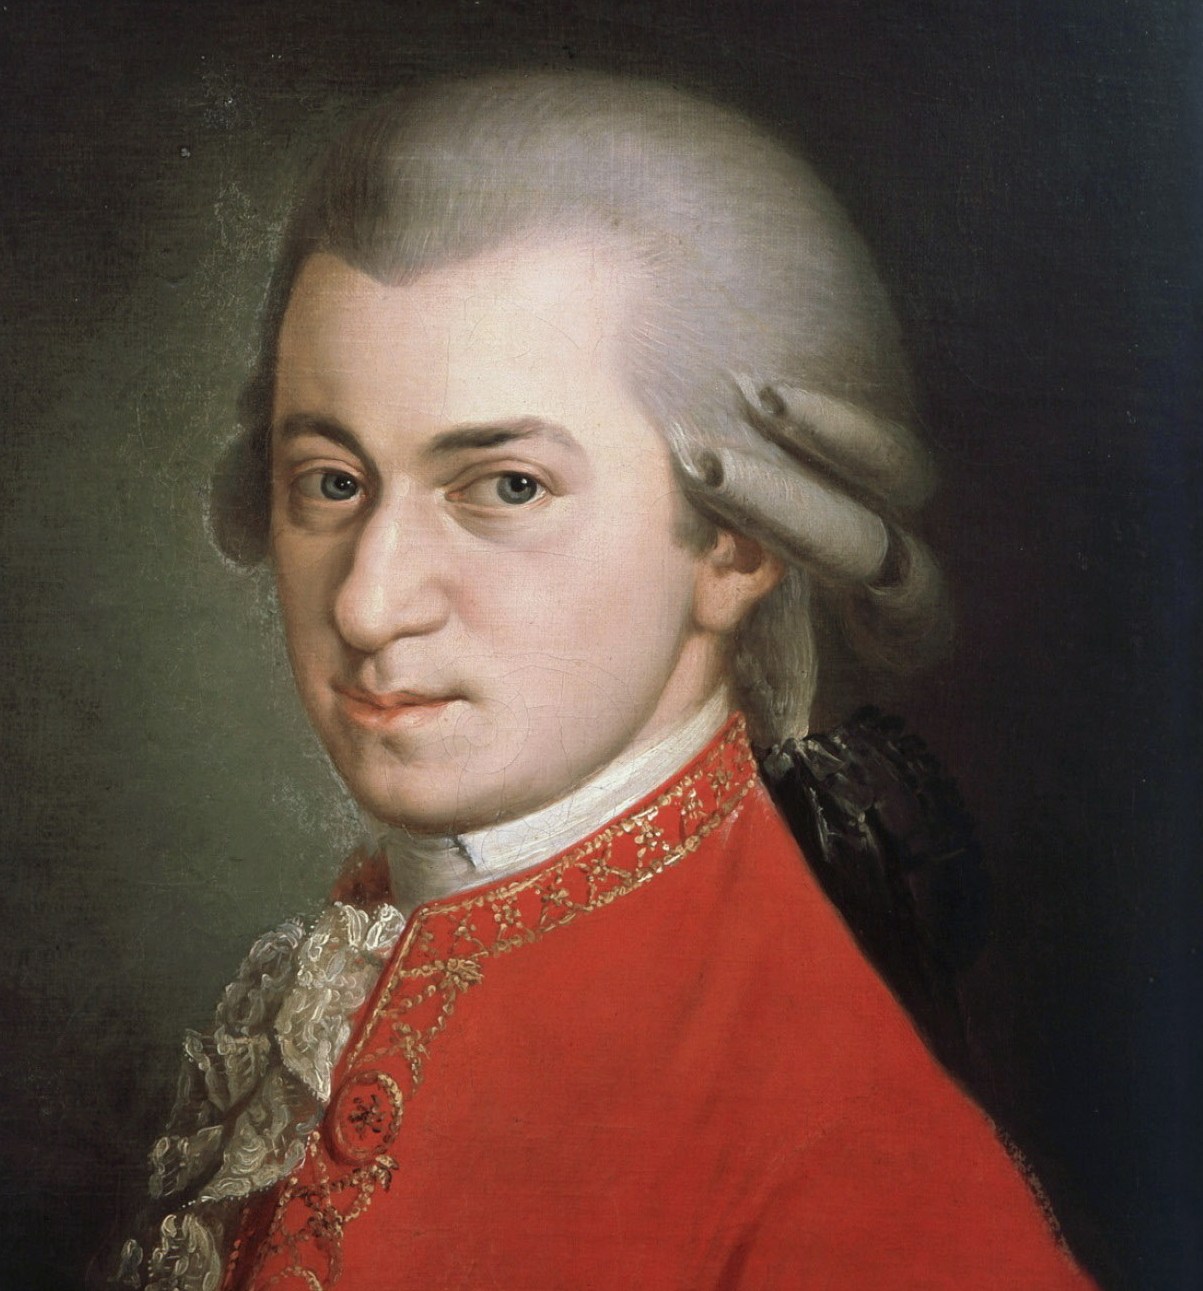 Painting of Wolfgang Amadeus Mozart